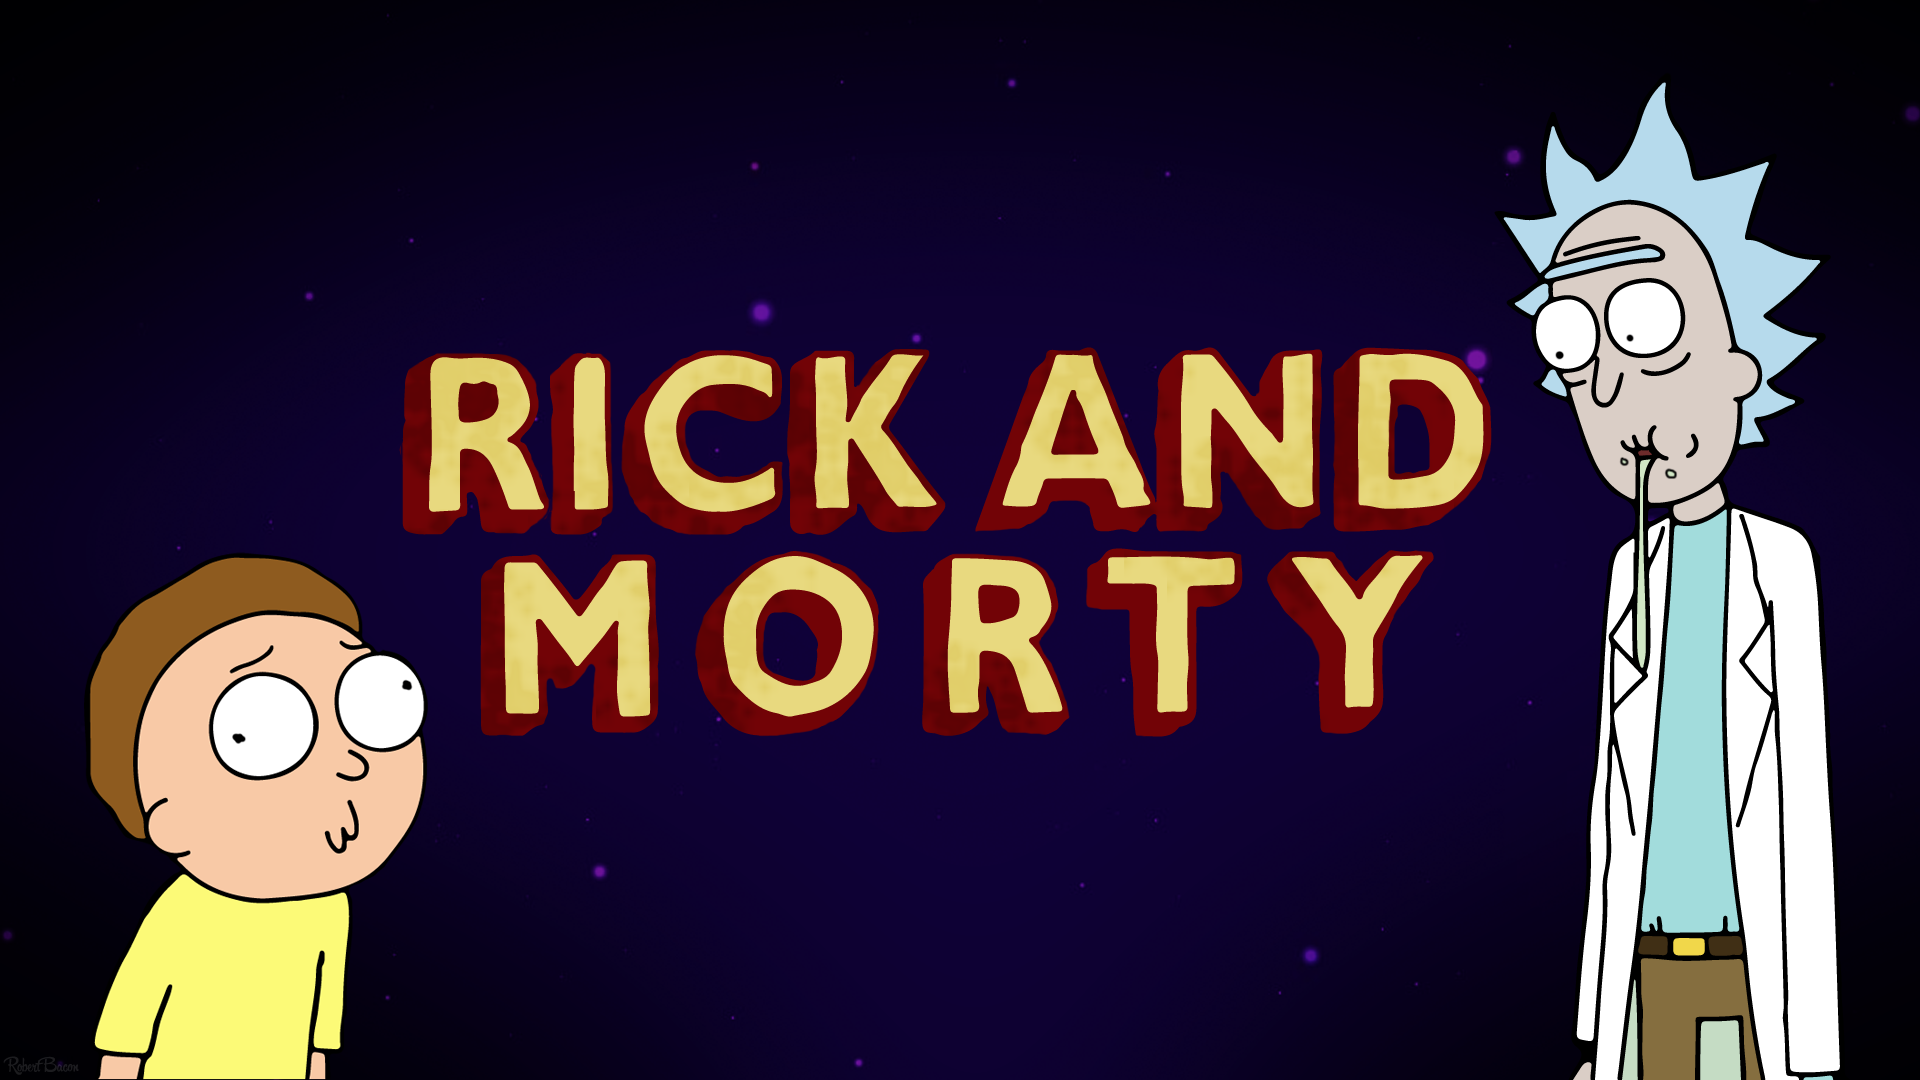 Rick And Morty Wallpapers 1920x1080 Coolers Rick Morty Rick